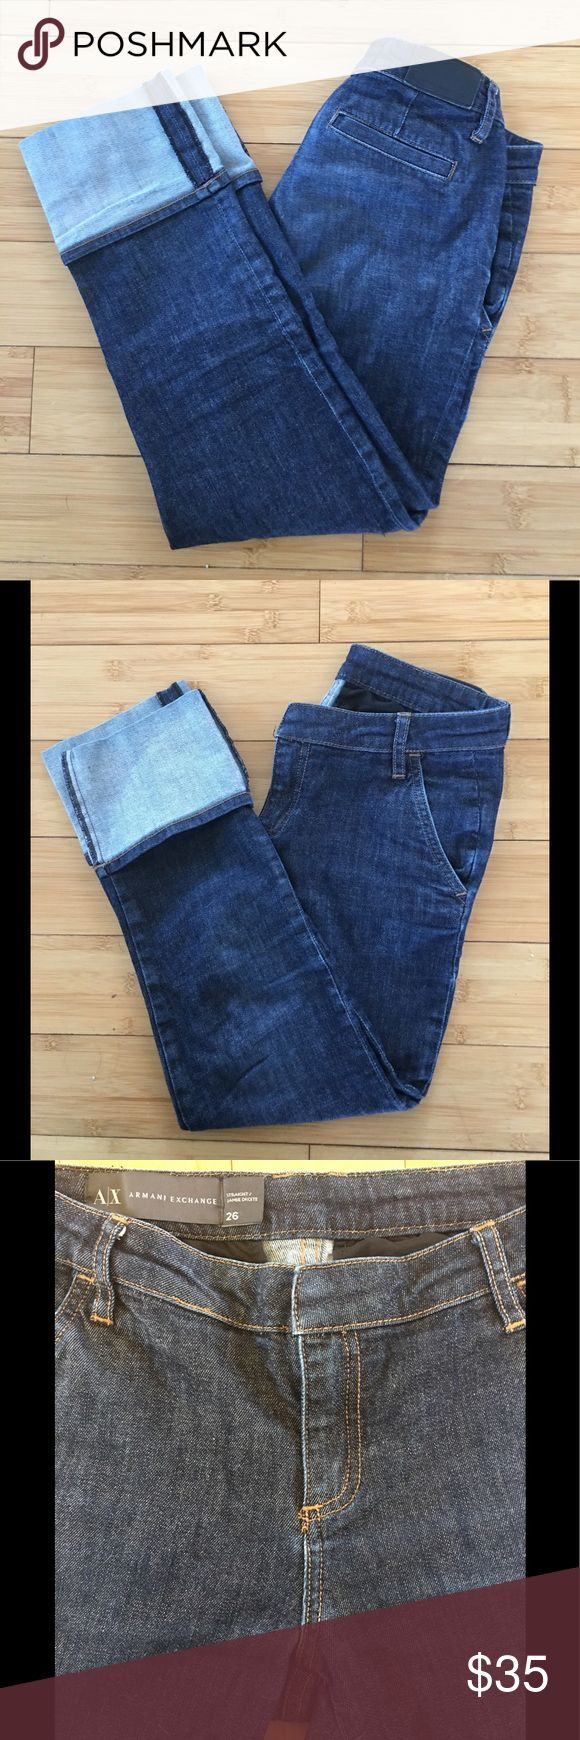 Women's Armani Exchange Straight Cuffed Jeans Awesome looking jeans from Armani Exchange! They are in awesome condition with no issues on the fabric!! Very soft denim!! A/X Armani Exchange Jeans Straight Leg